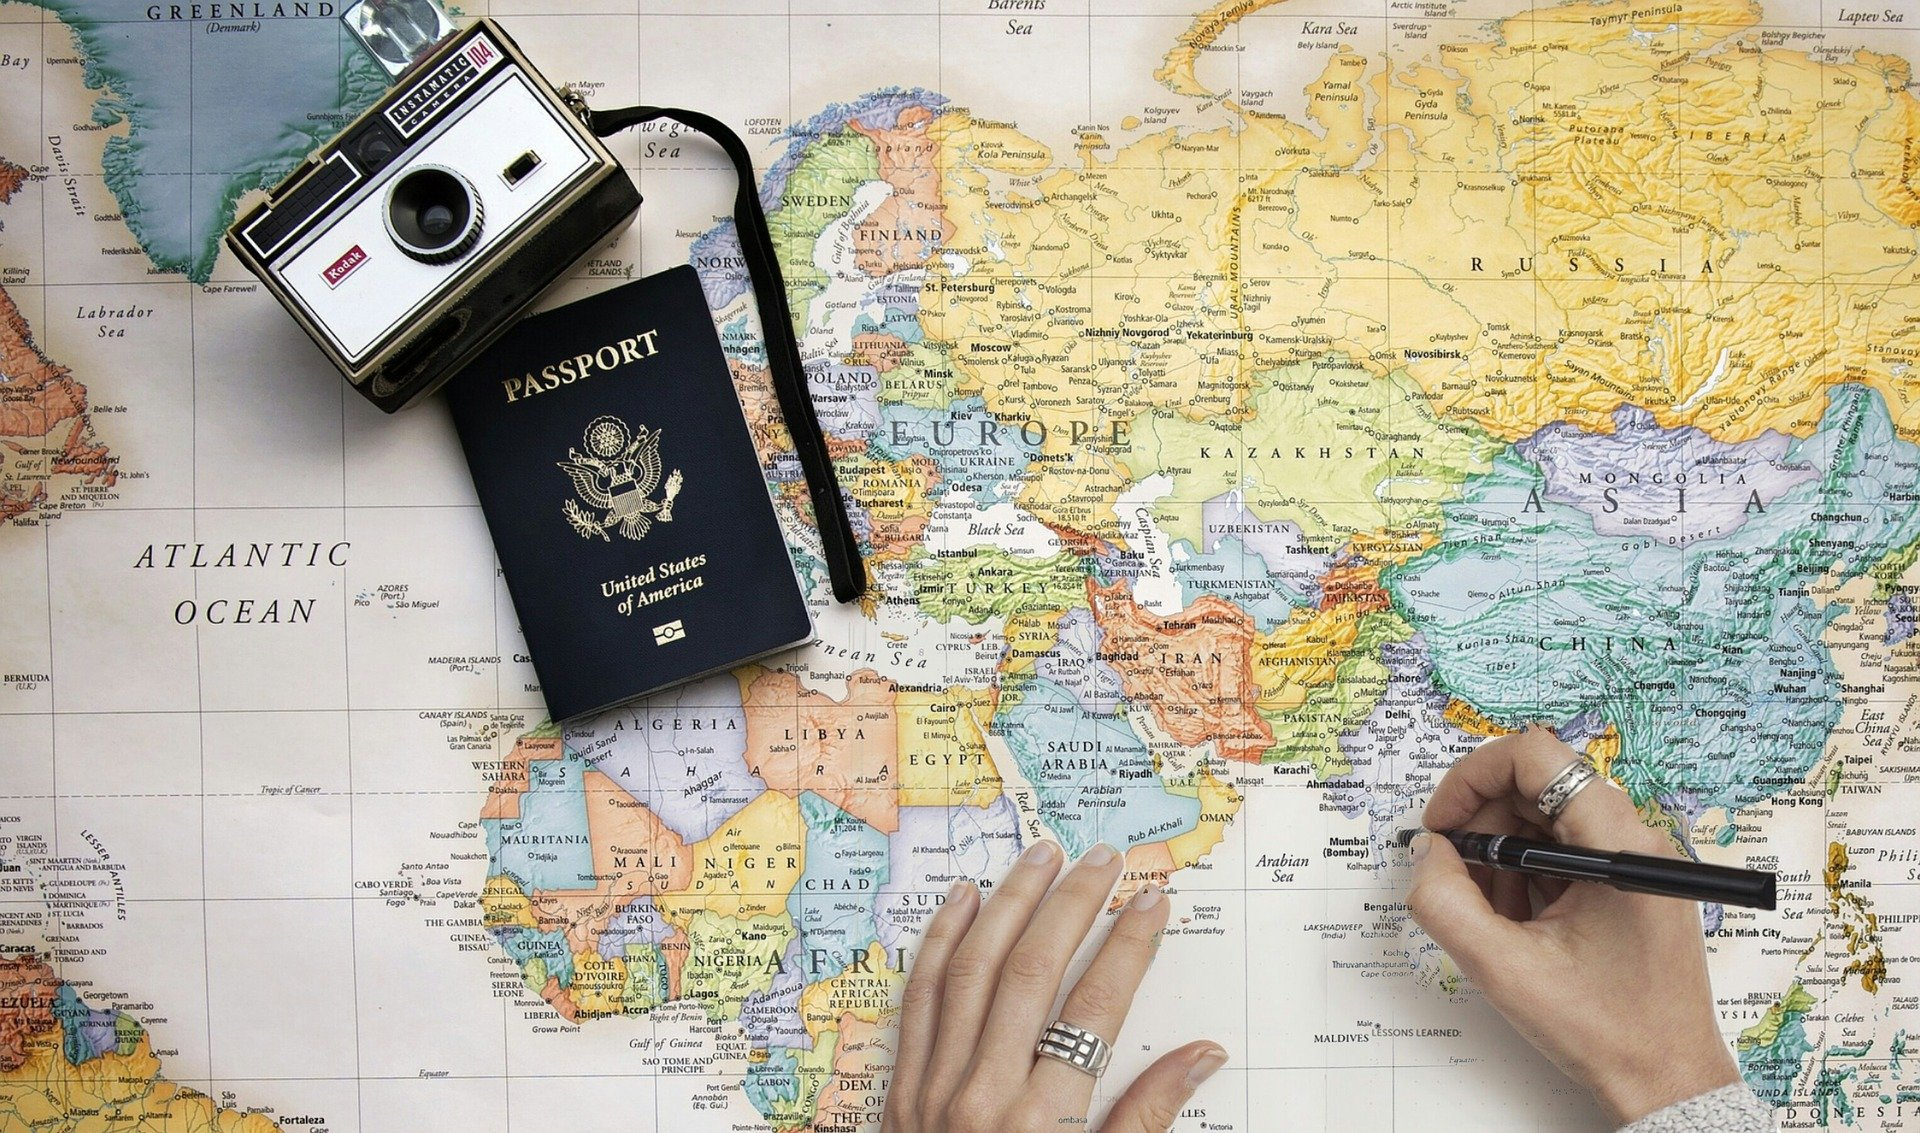 Who doesn't love good last minute travel deals, how adventurous! But be careful, often the small print and hidden catches come back to haunt you.